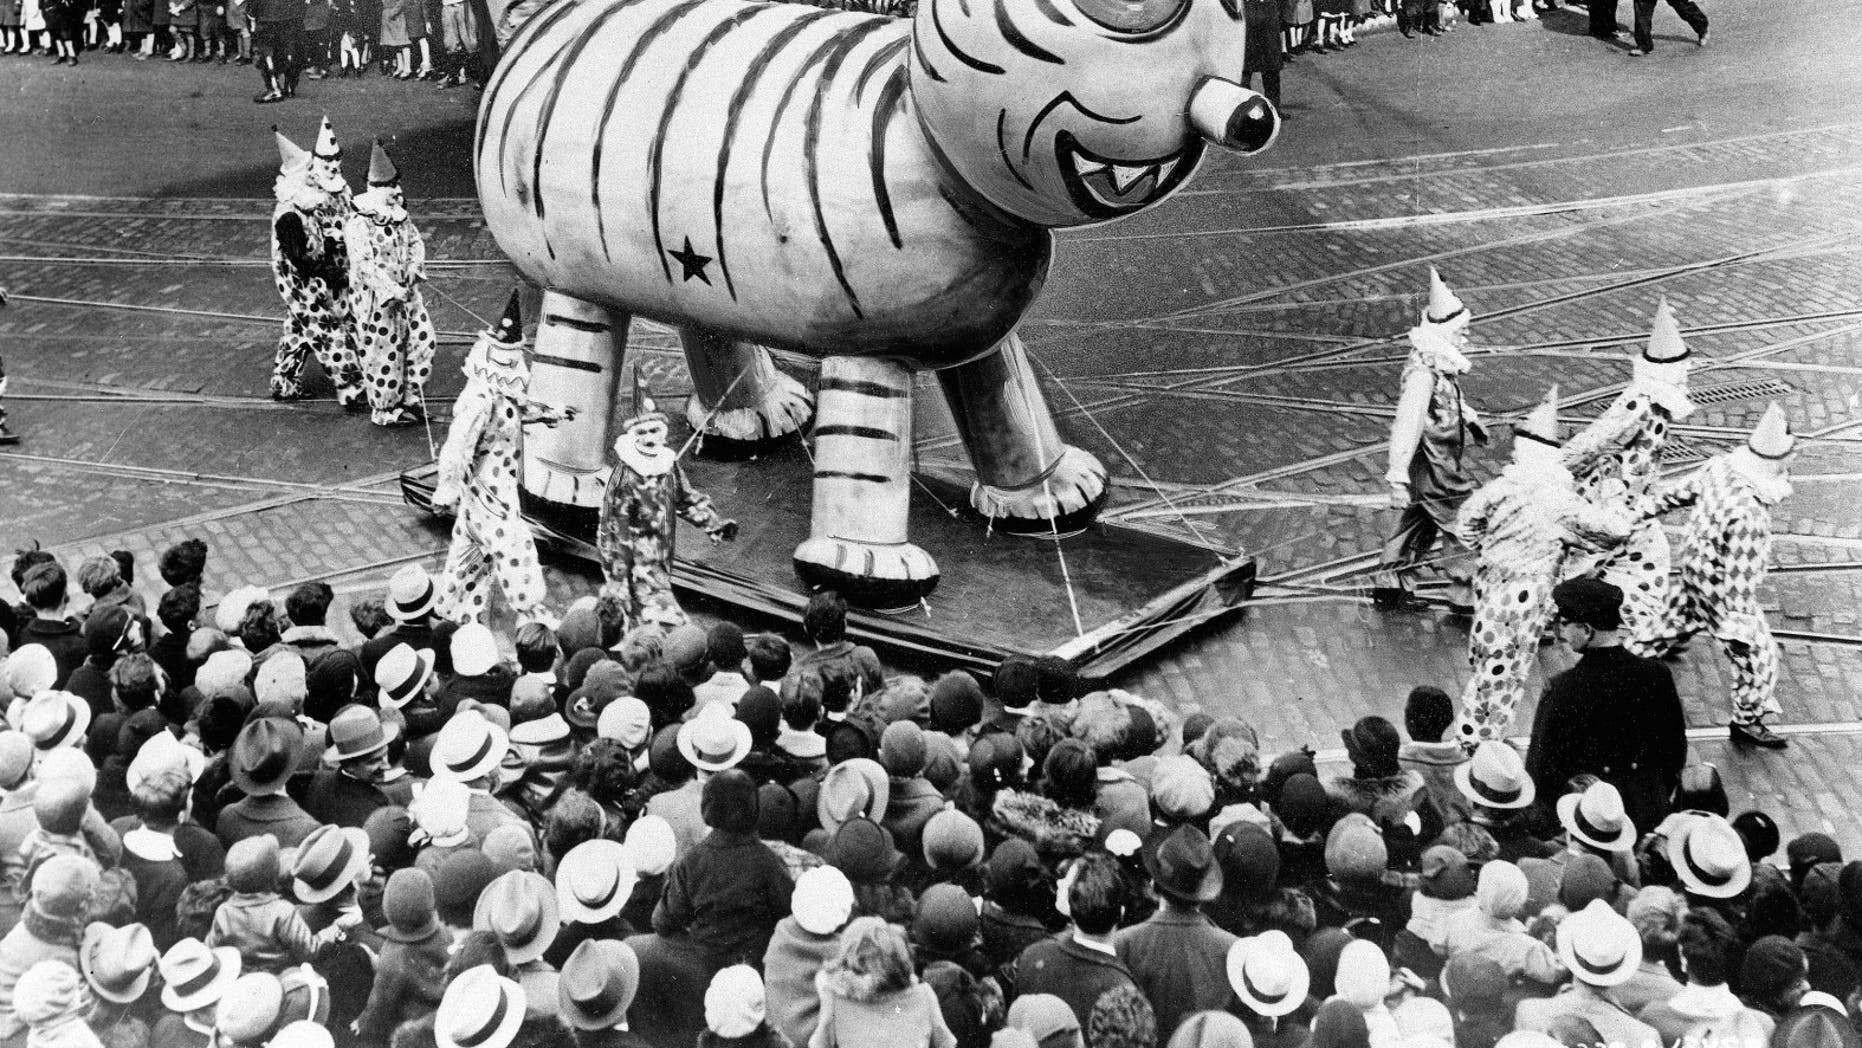 An outdoor float of a big cat makes its way down a street during the Thanksgiving Day Parade in New York City on Nov. 26, 1931. (AP Photo)